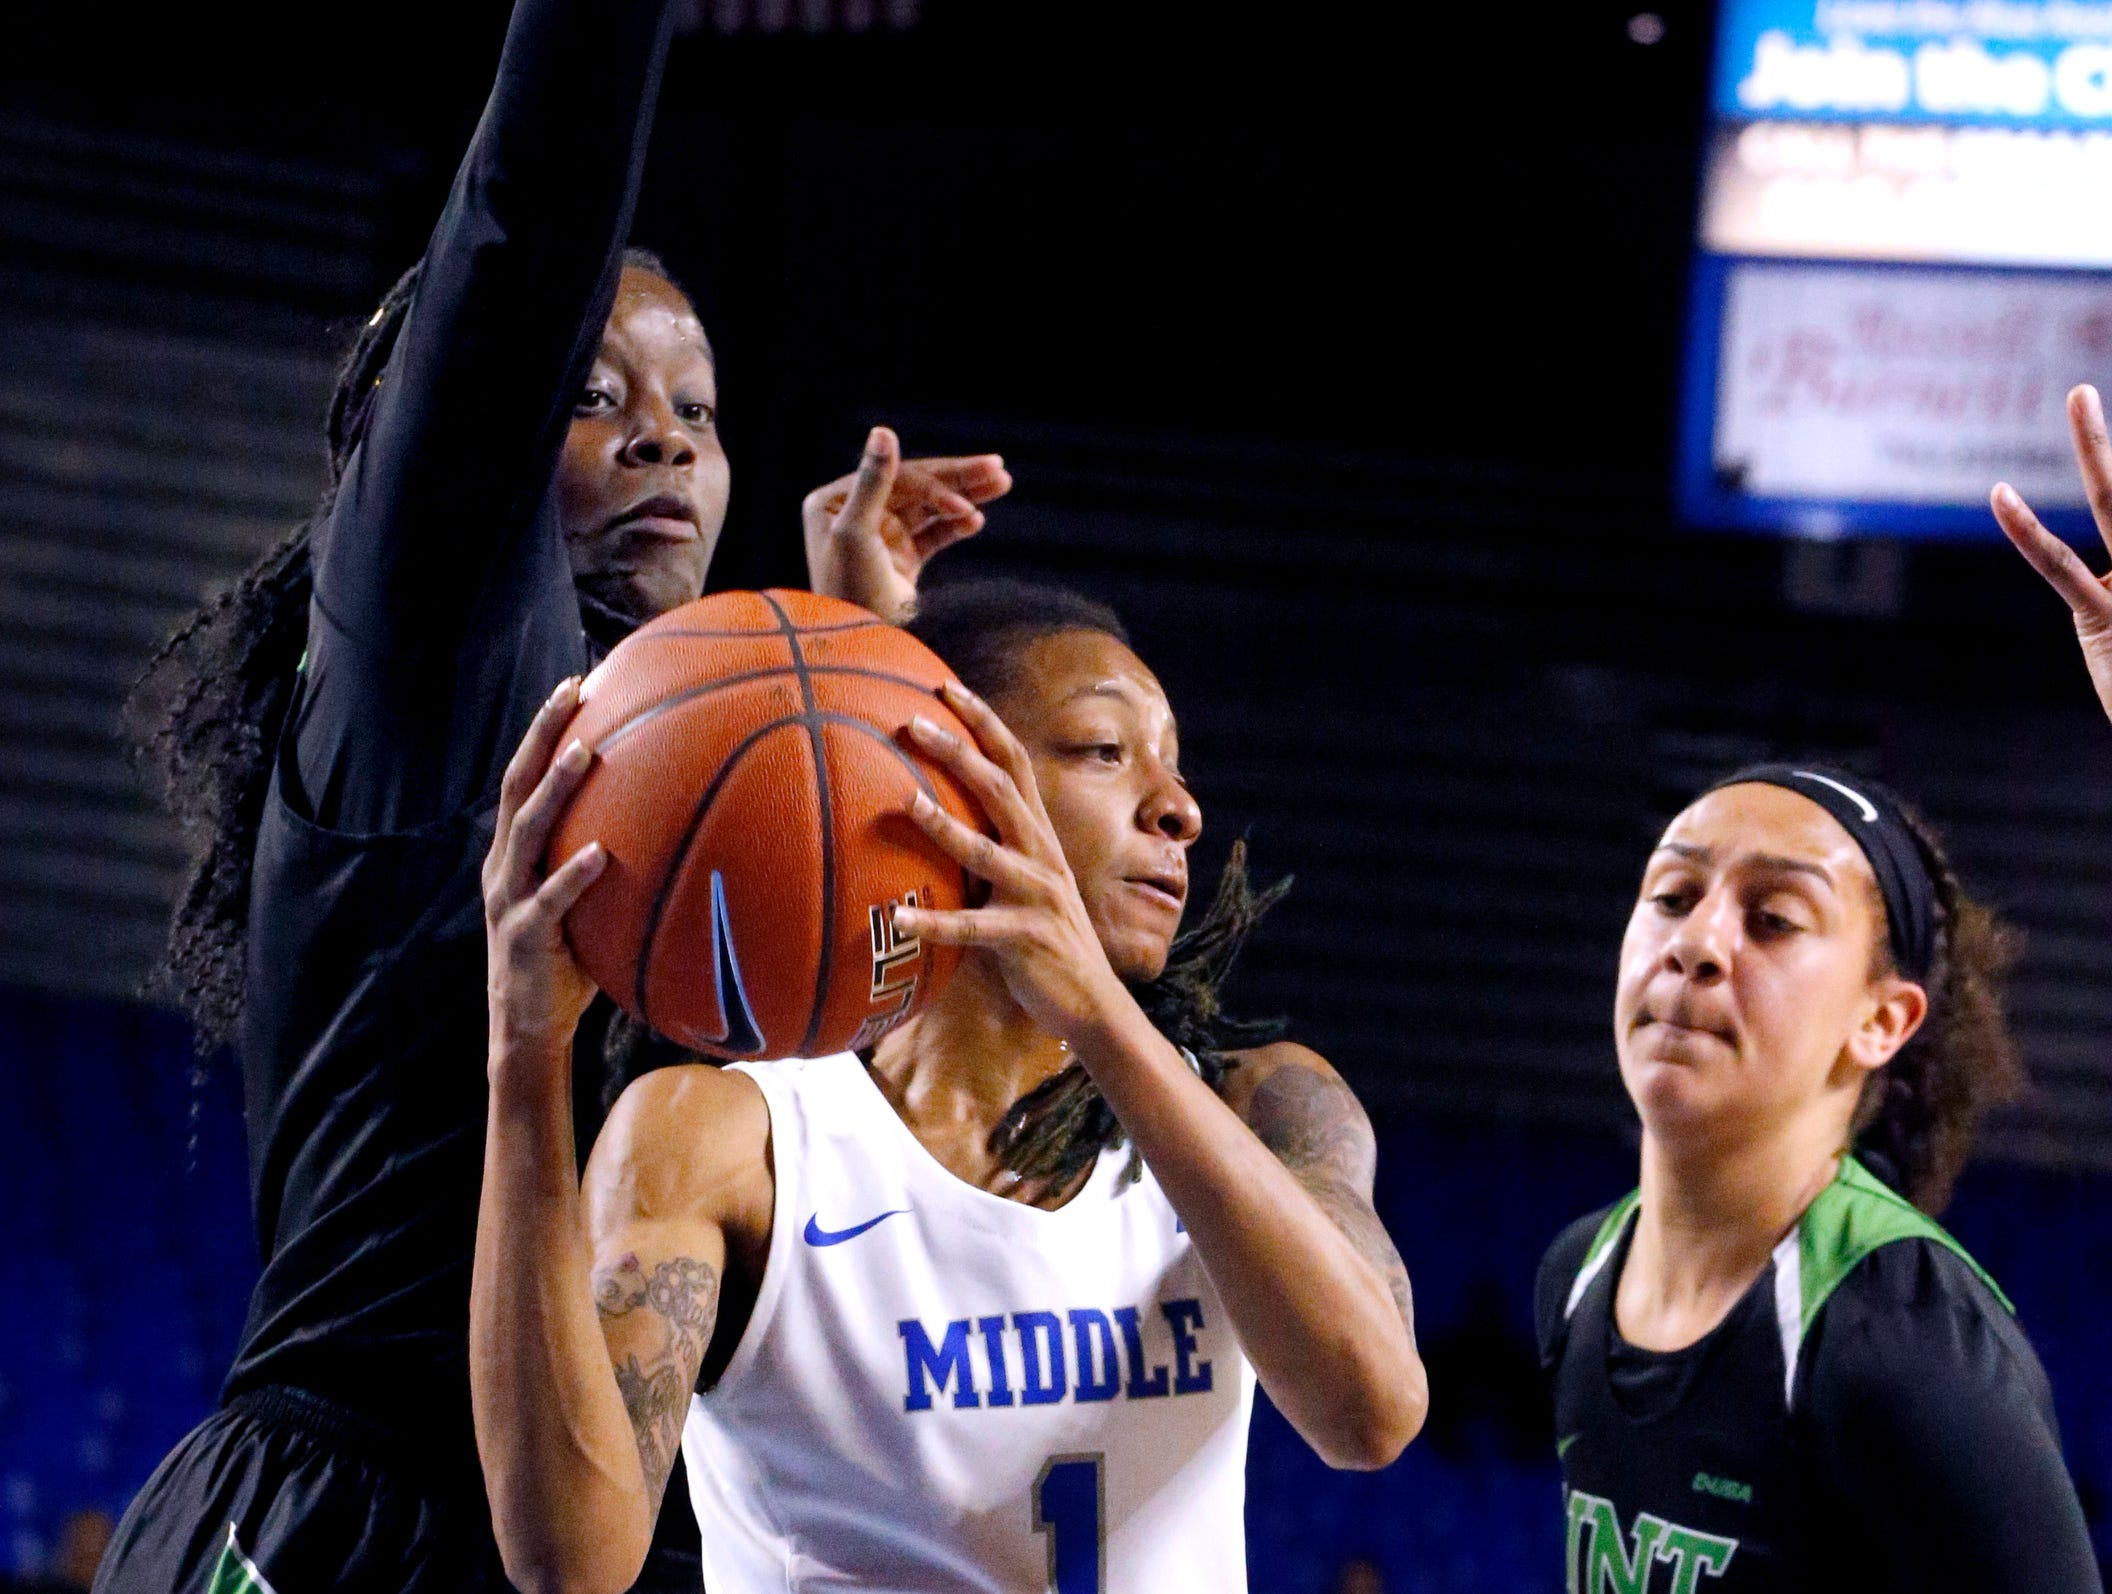 MTSU's guard A'Queen Hayes (1) looks to pass the ball as North Texas' forward/center Anisha George (42) and North Texas' forward Charlene Shepherd (11) cover her on Saturday Jan. 26, 2019.